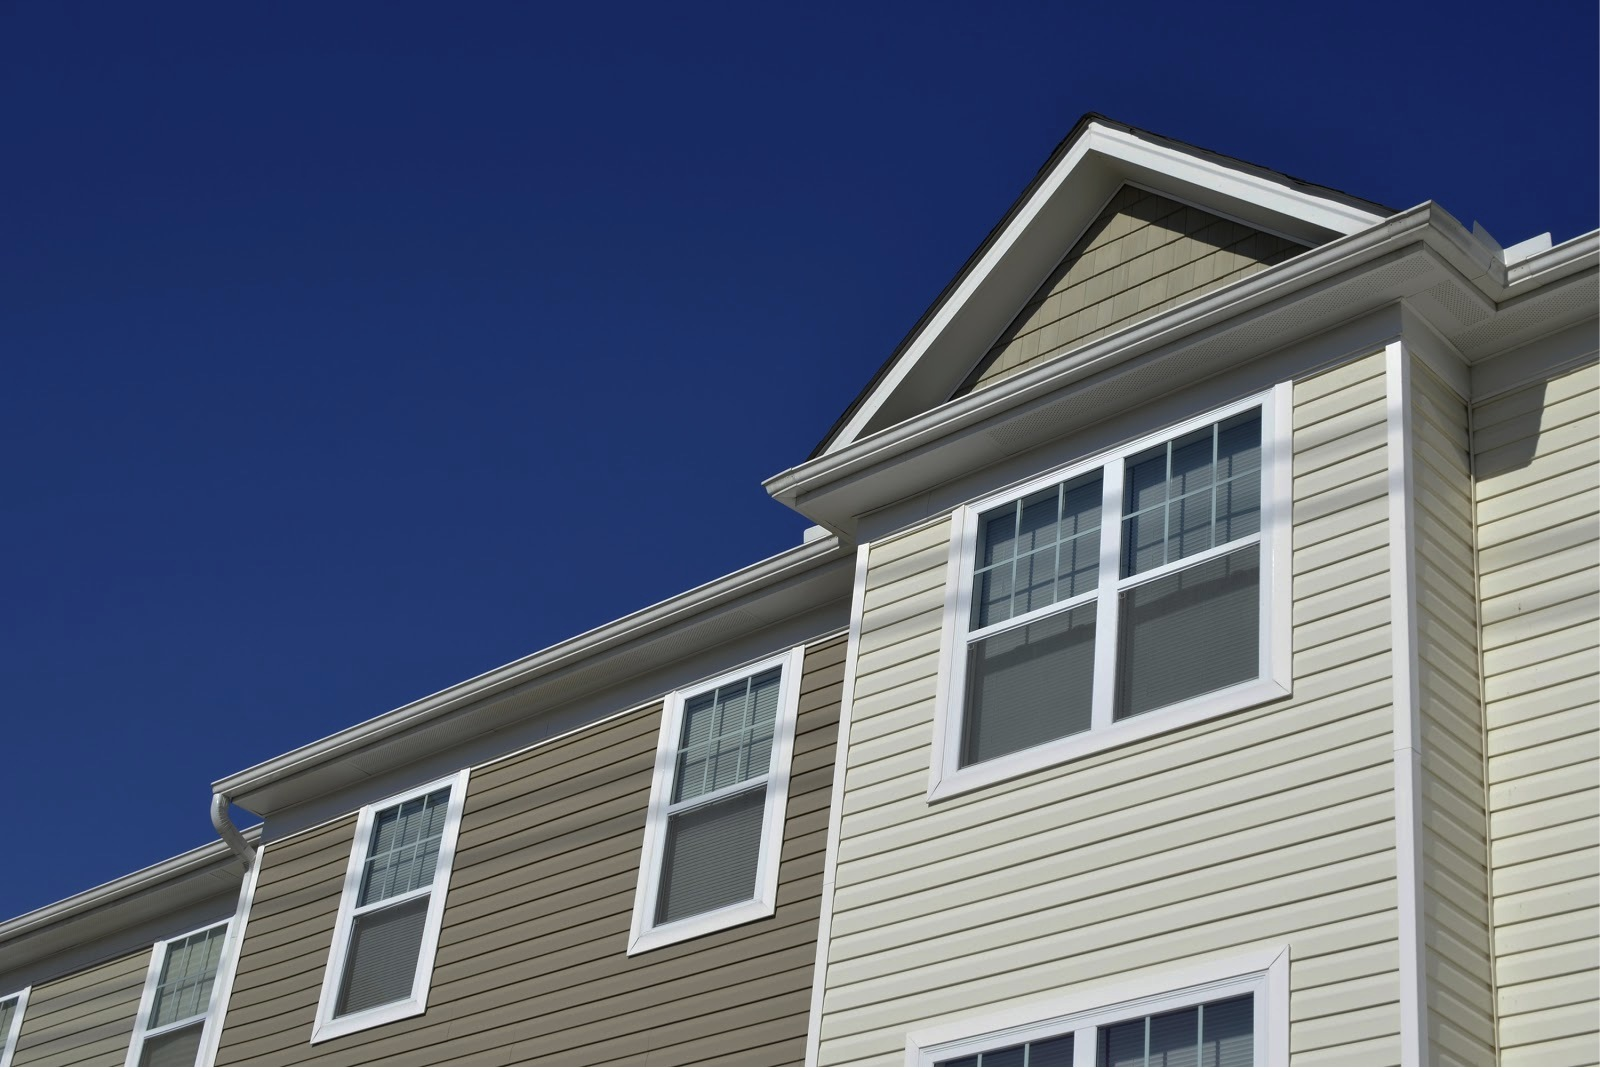 How Does Window Capping Affect My Siding? - Modernize